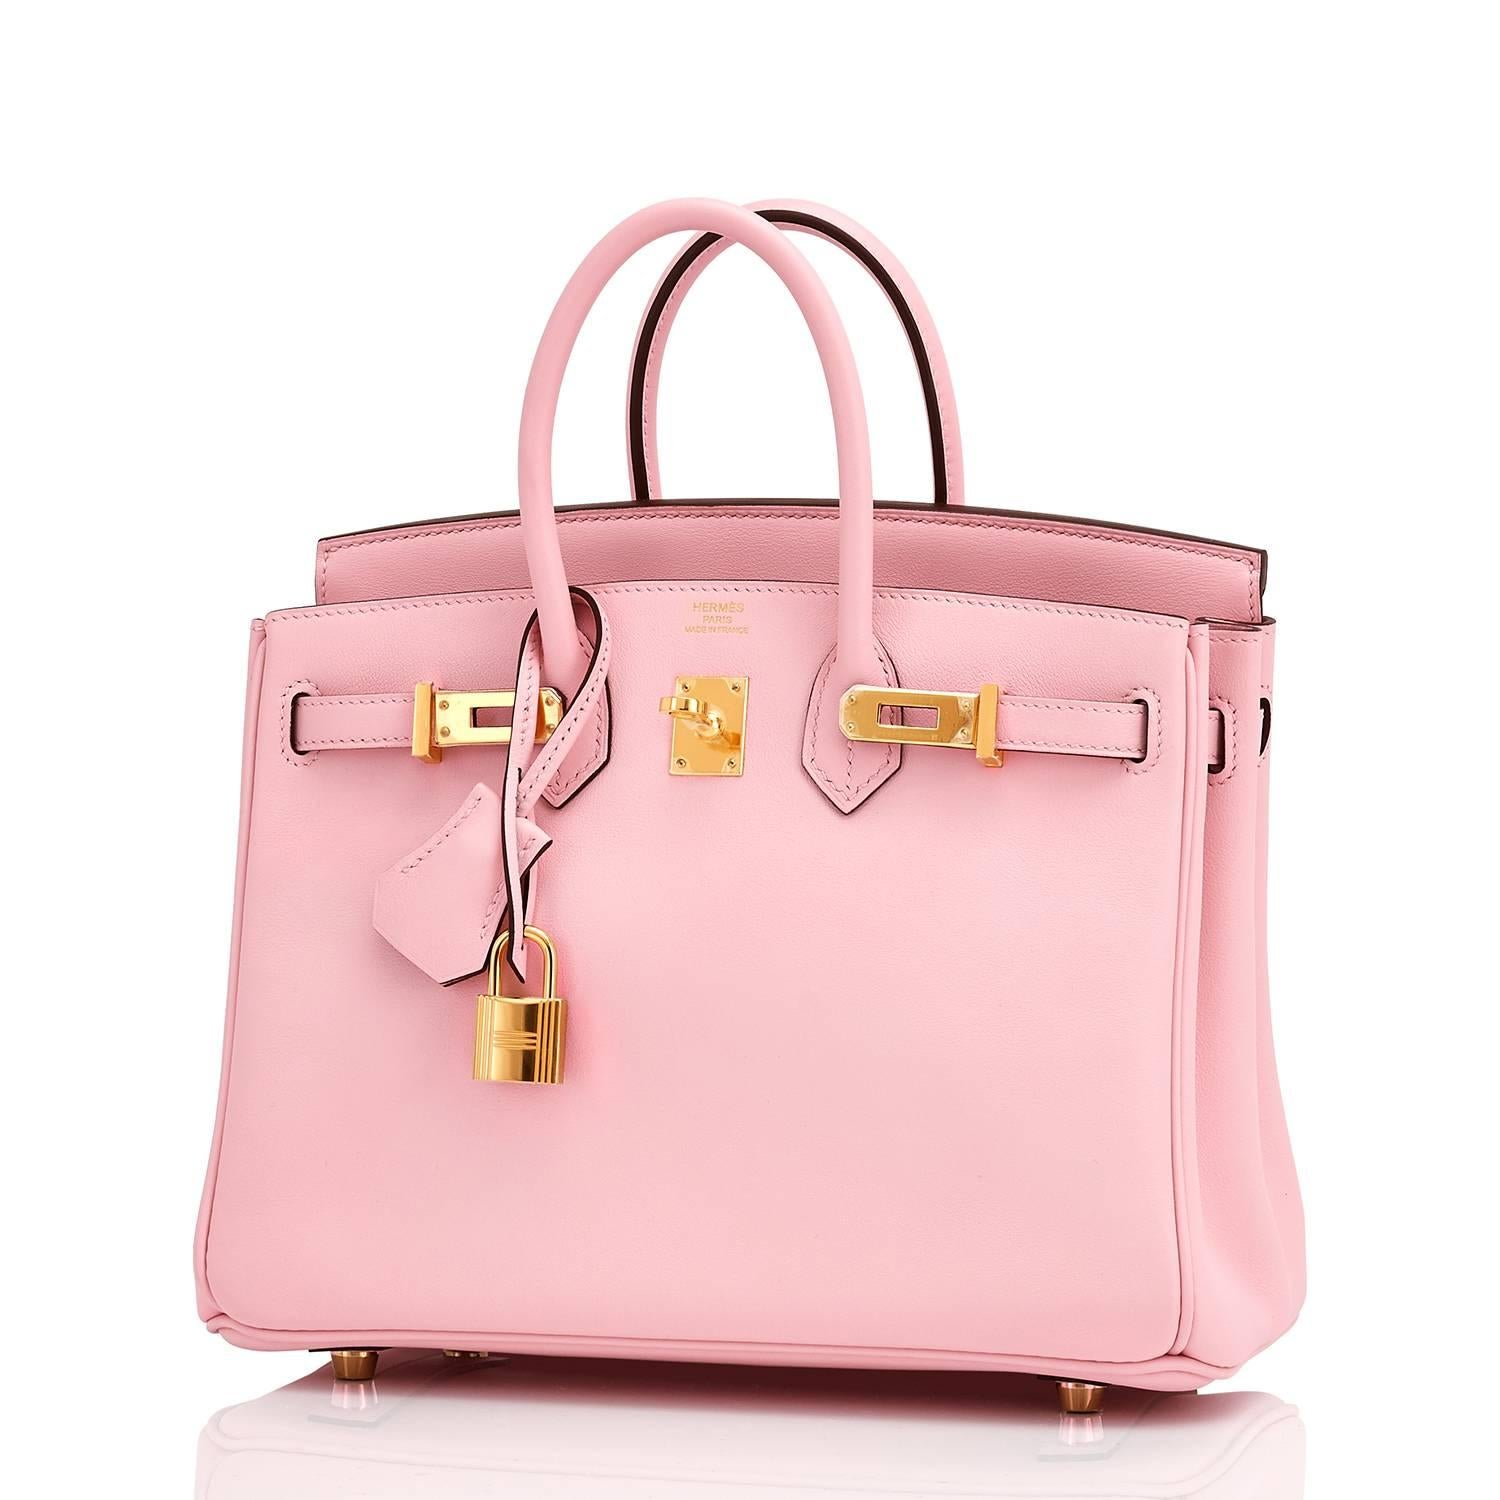 f4a0dad949fb ... canada hermes swift gold hardware pink jewel birkin 25 rose sakura bag  at 1stdibs c3baf a42f1